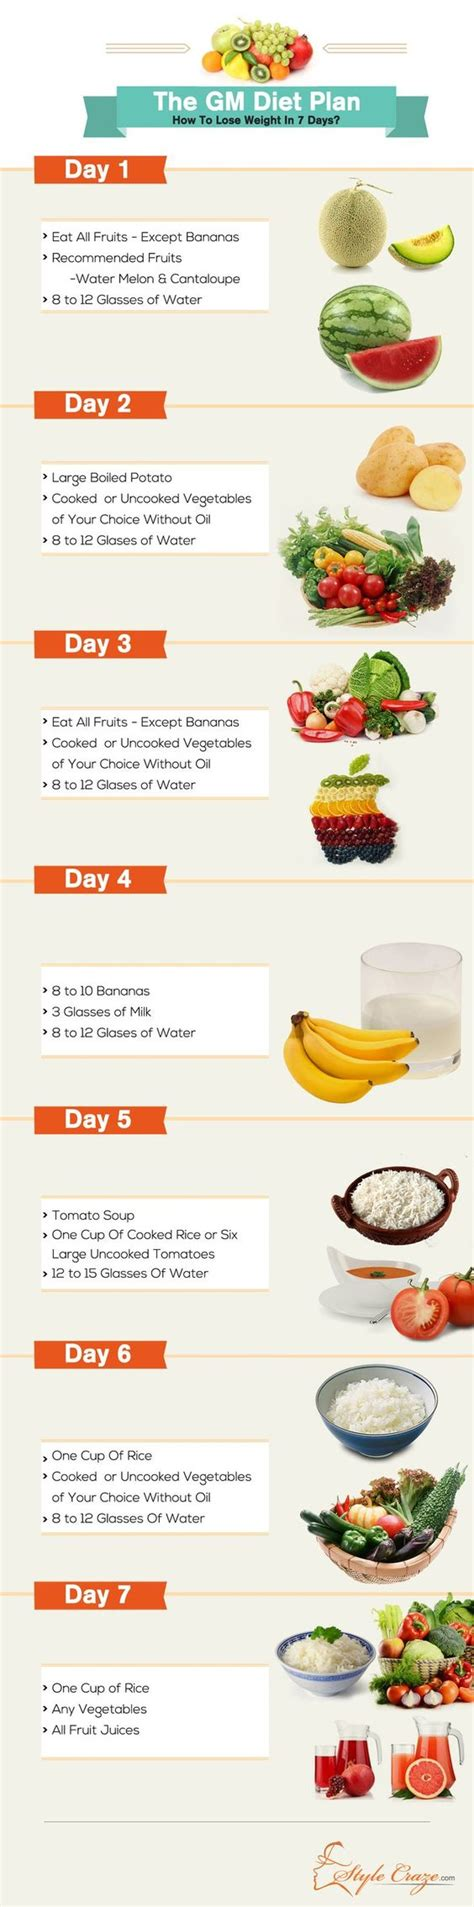 1 Week Detox Plan by The Gm Diet Plan How To Lose Weight In Just 7 Days To